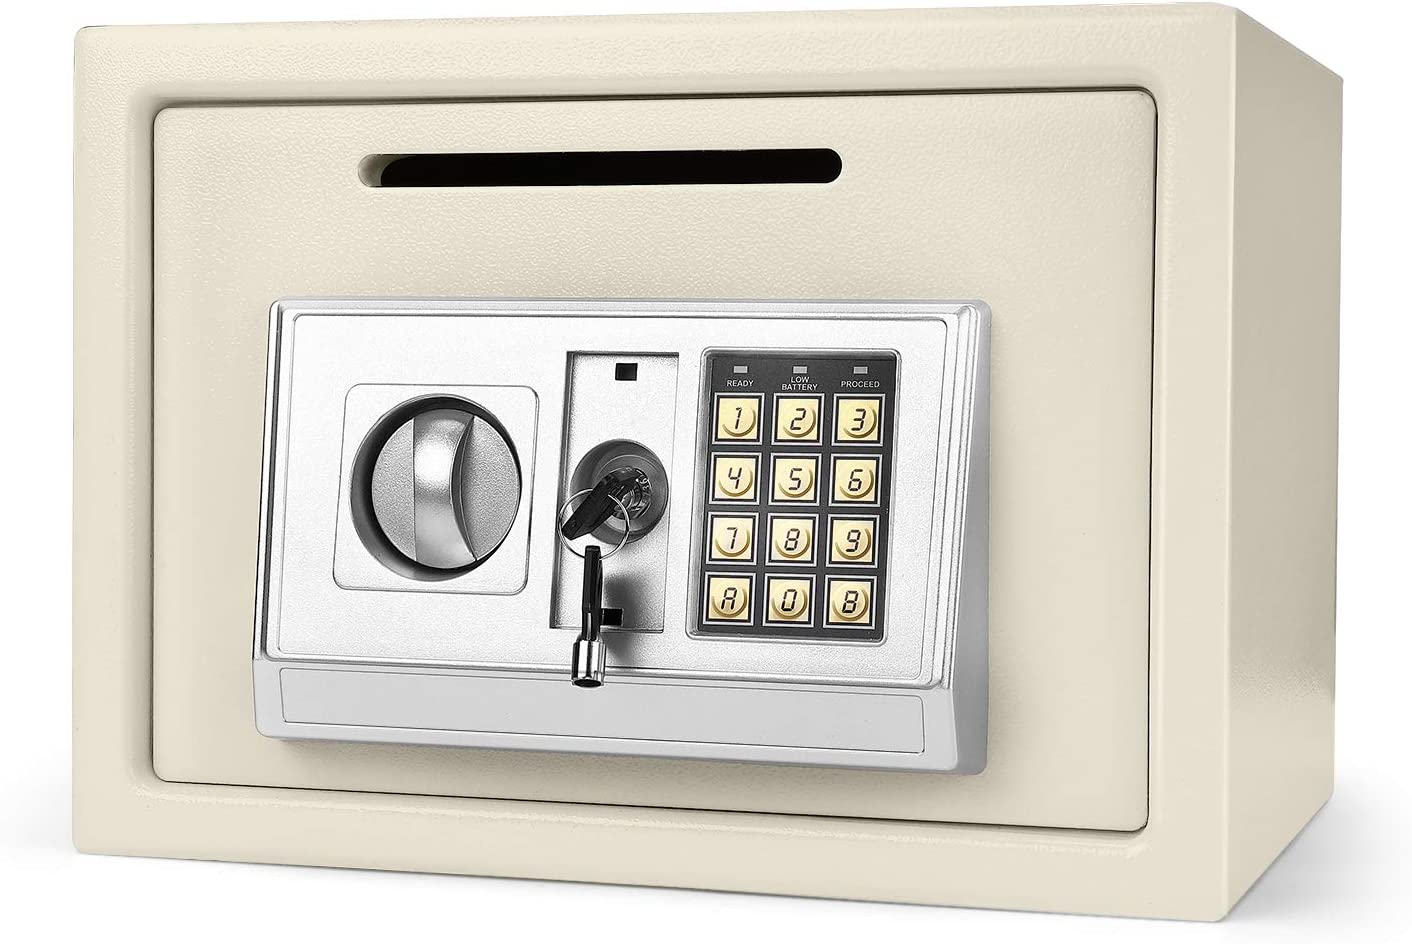 """Flexzion Electronic Depository Safe Box with Drop Slot Posting Opening - Digital Keypad Combination Lock Security Cabinet for Home Office Money Documents Gun Cash Deposit Hotel